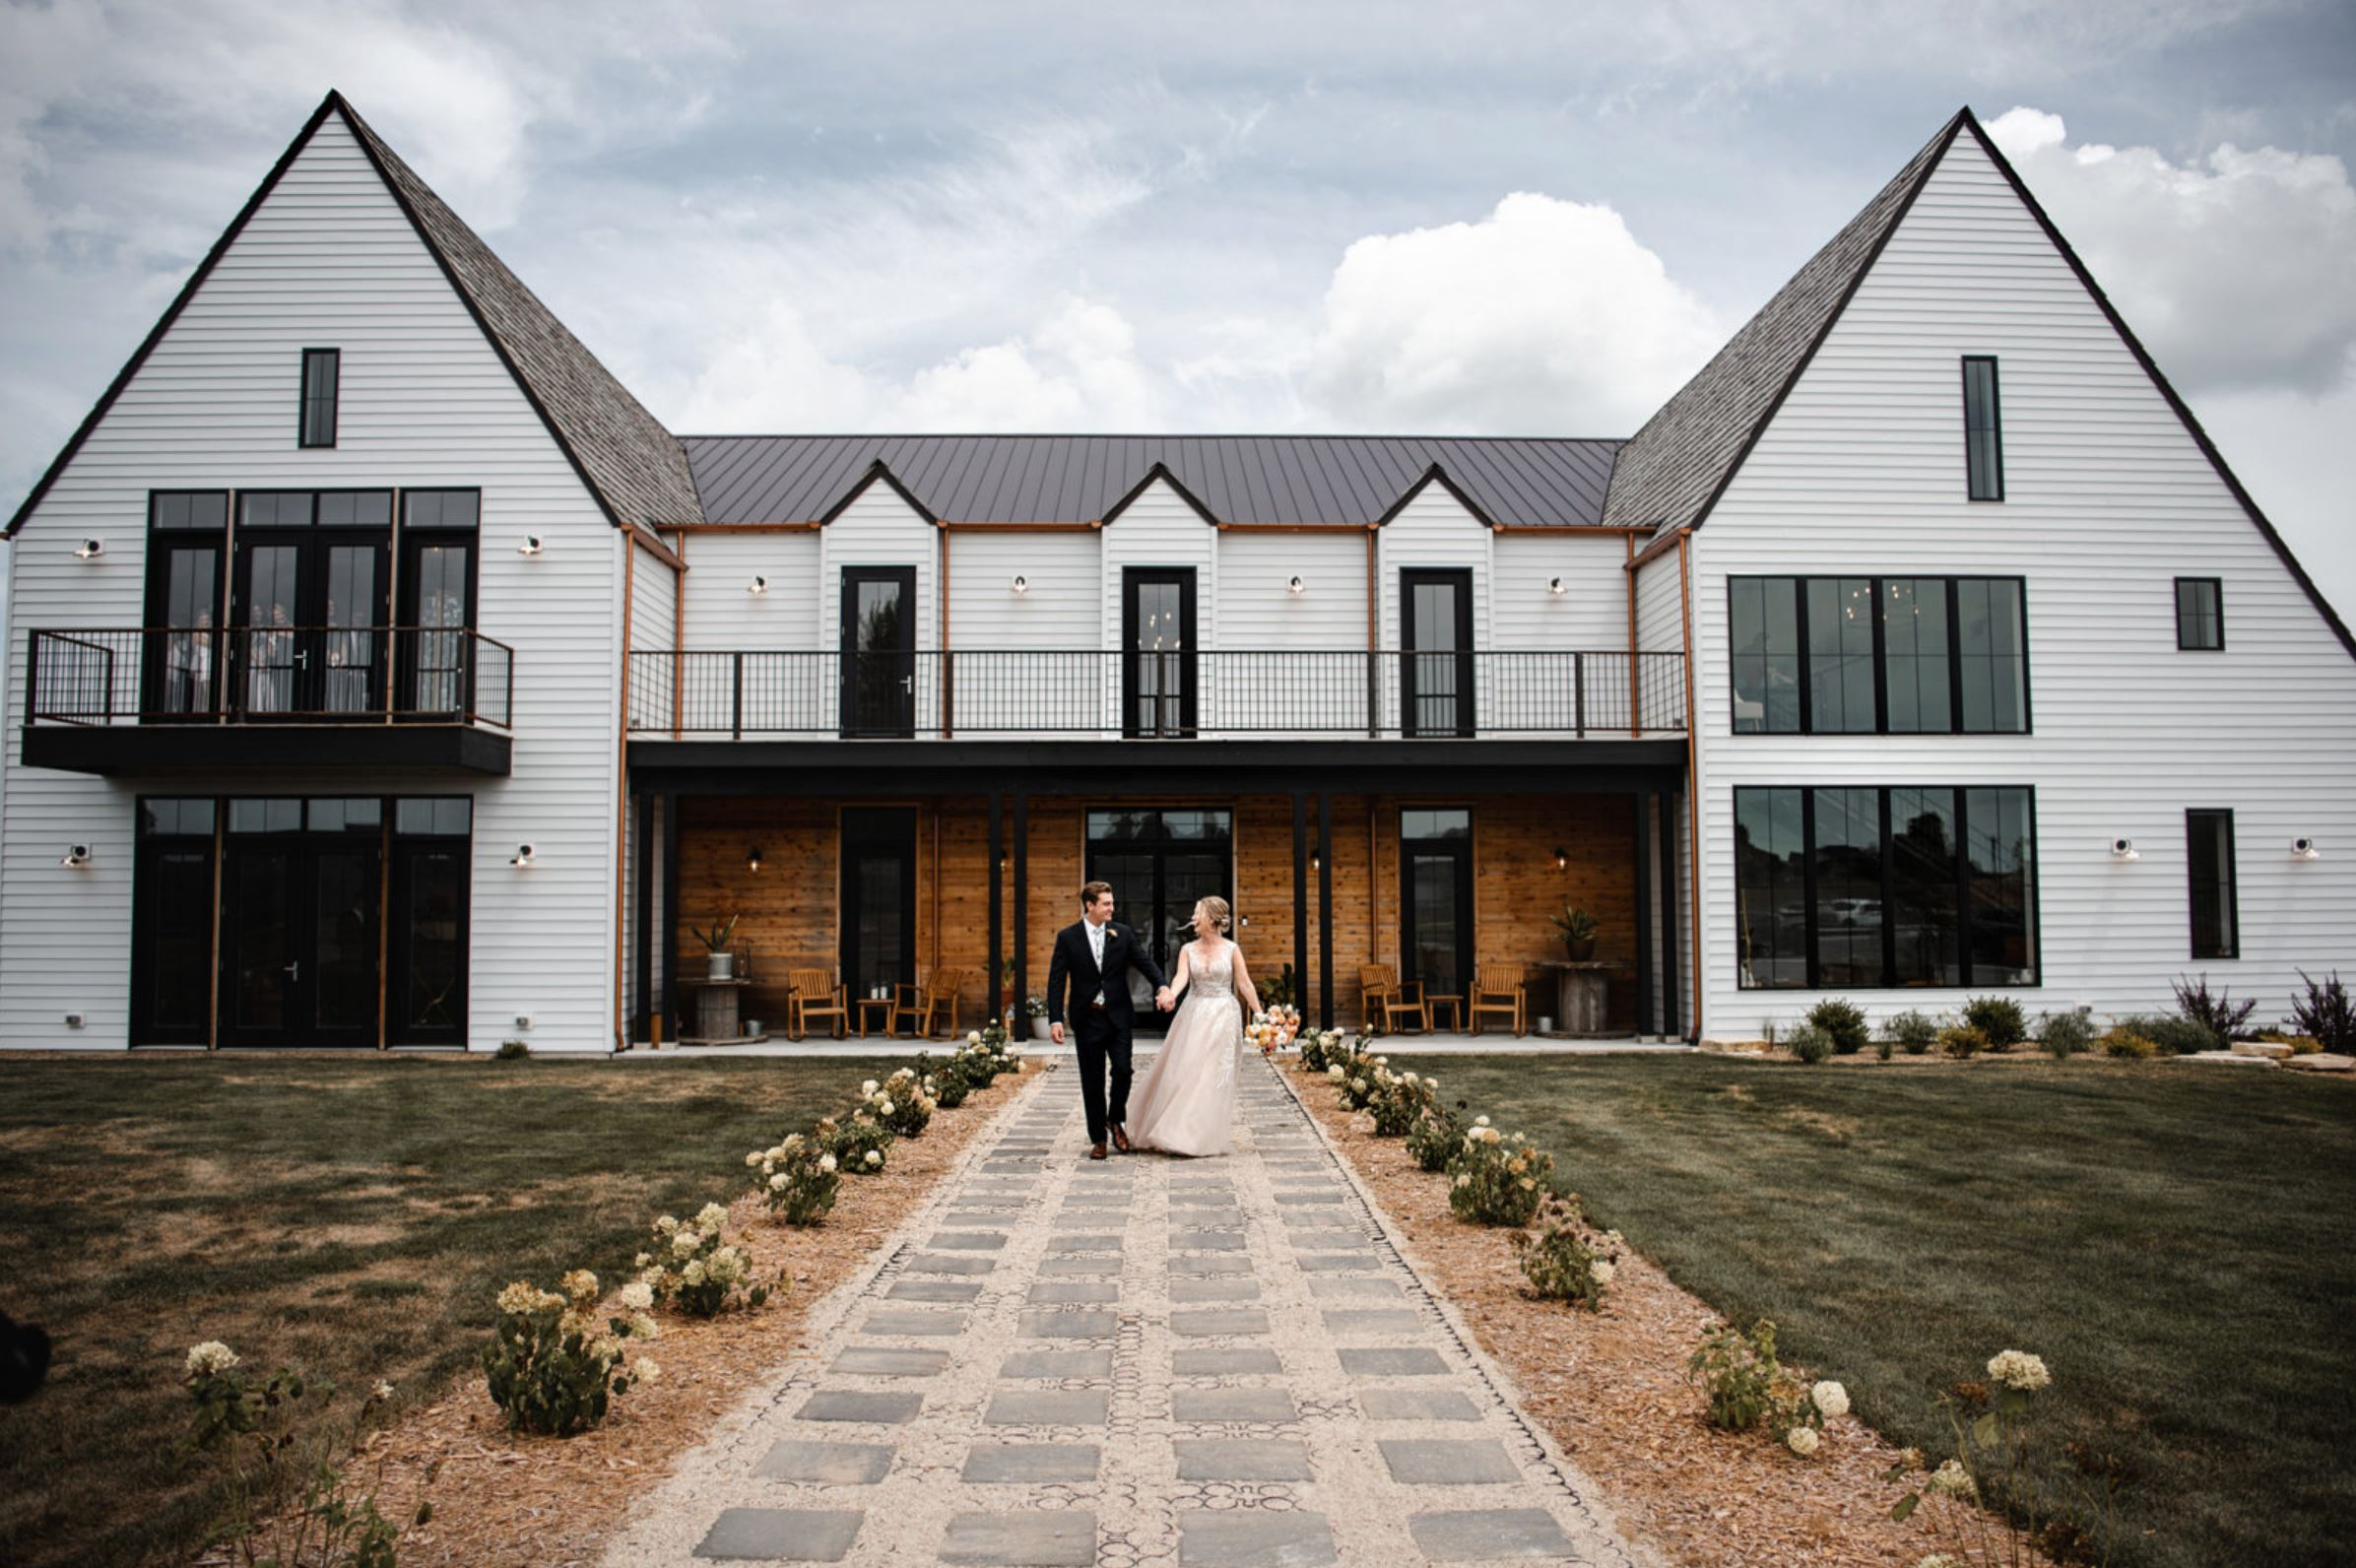 A wedding couple is standing in front of the Little Lights on the Lane wedding venue in Iowa.